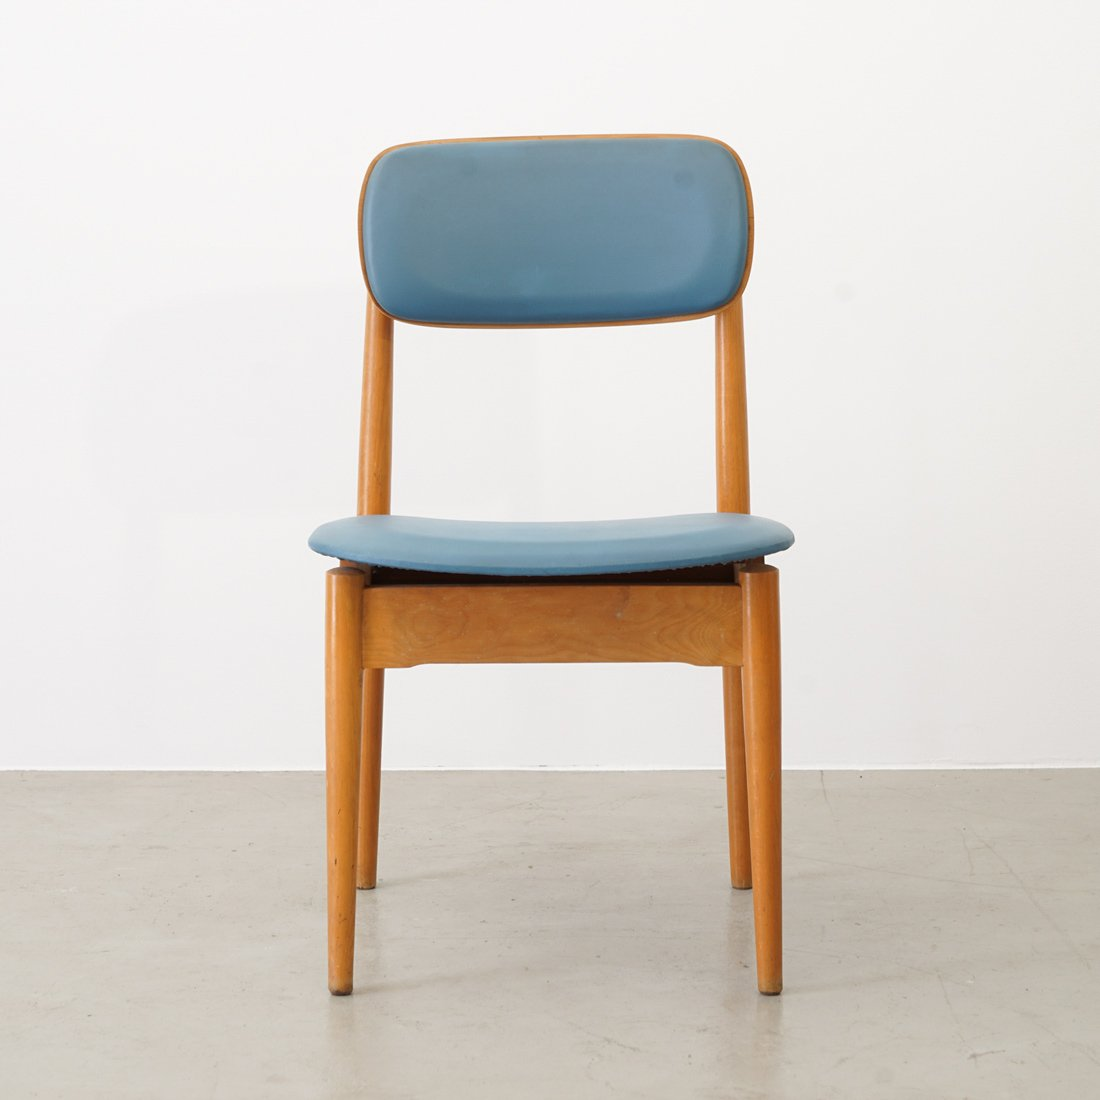 Stupendous Wooden Chairs In Blue Leatherette From Fritz Emme 1957 Set Of 4 Frankydiablos Diy Chair Ideas Frankydiabloscom